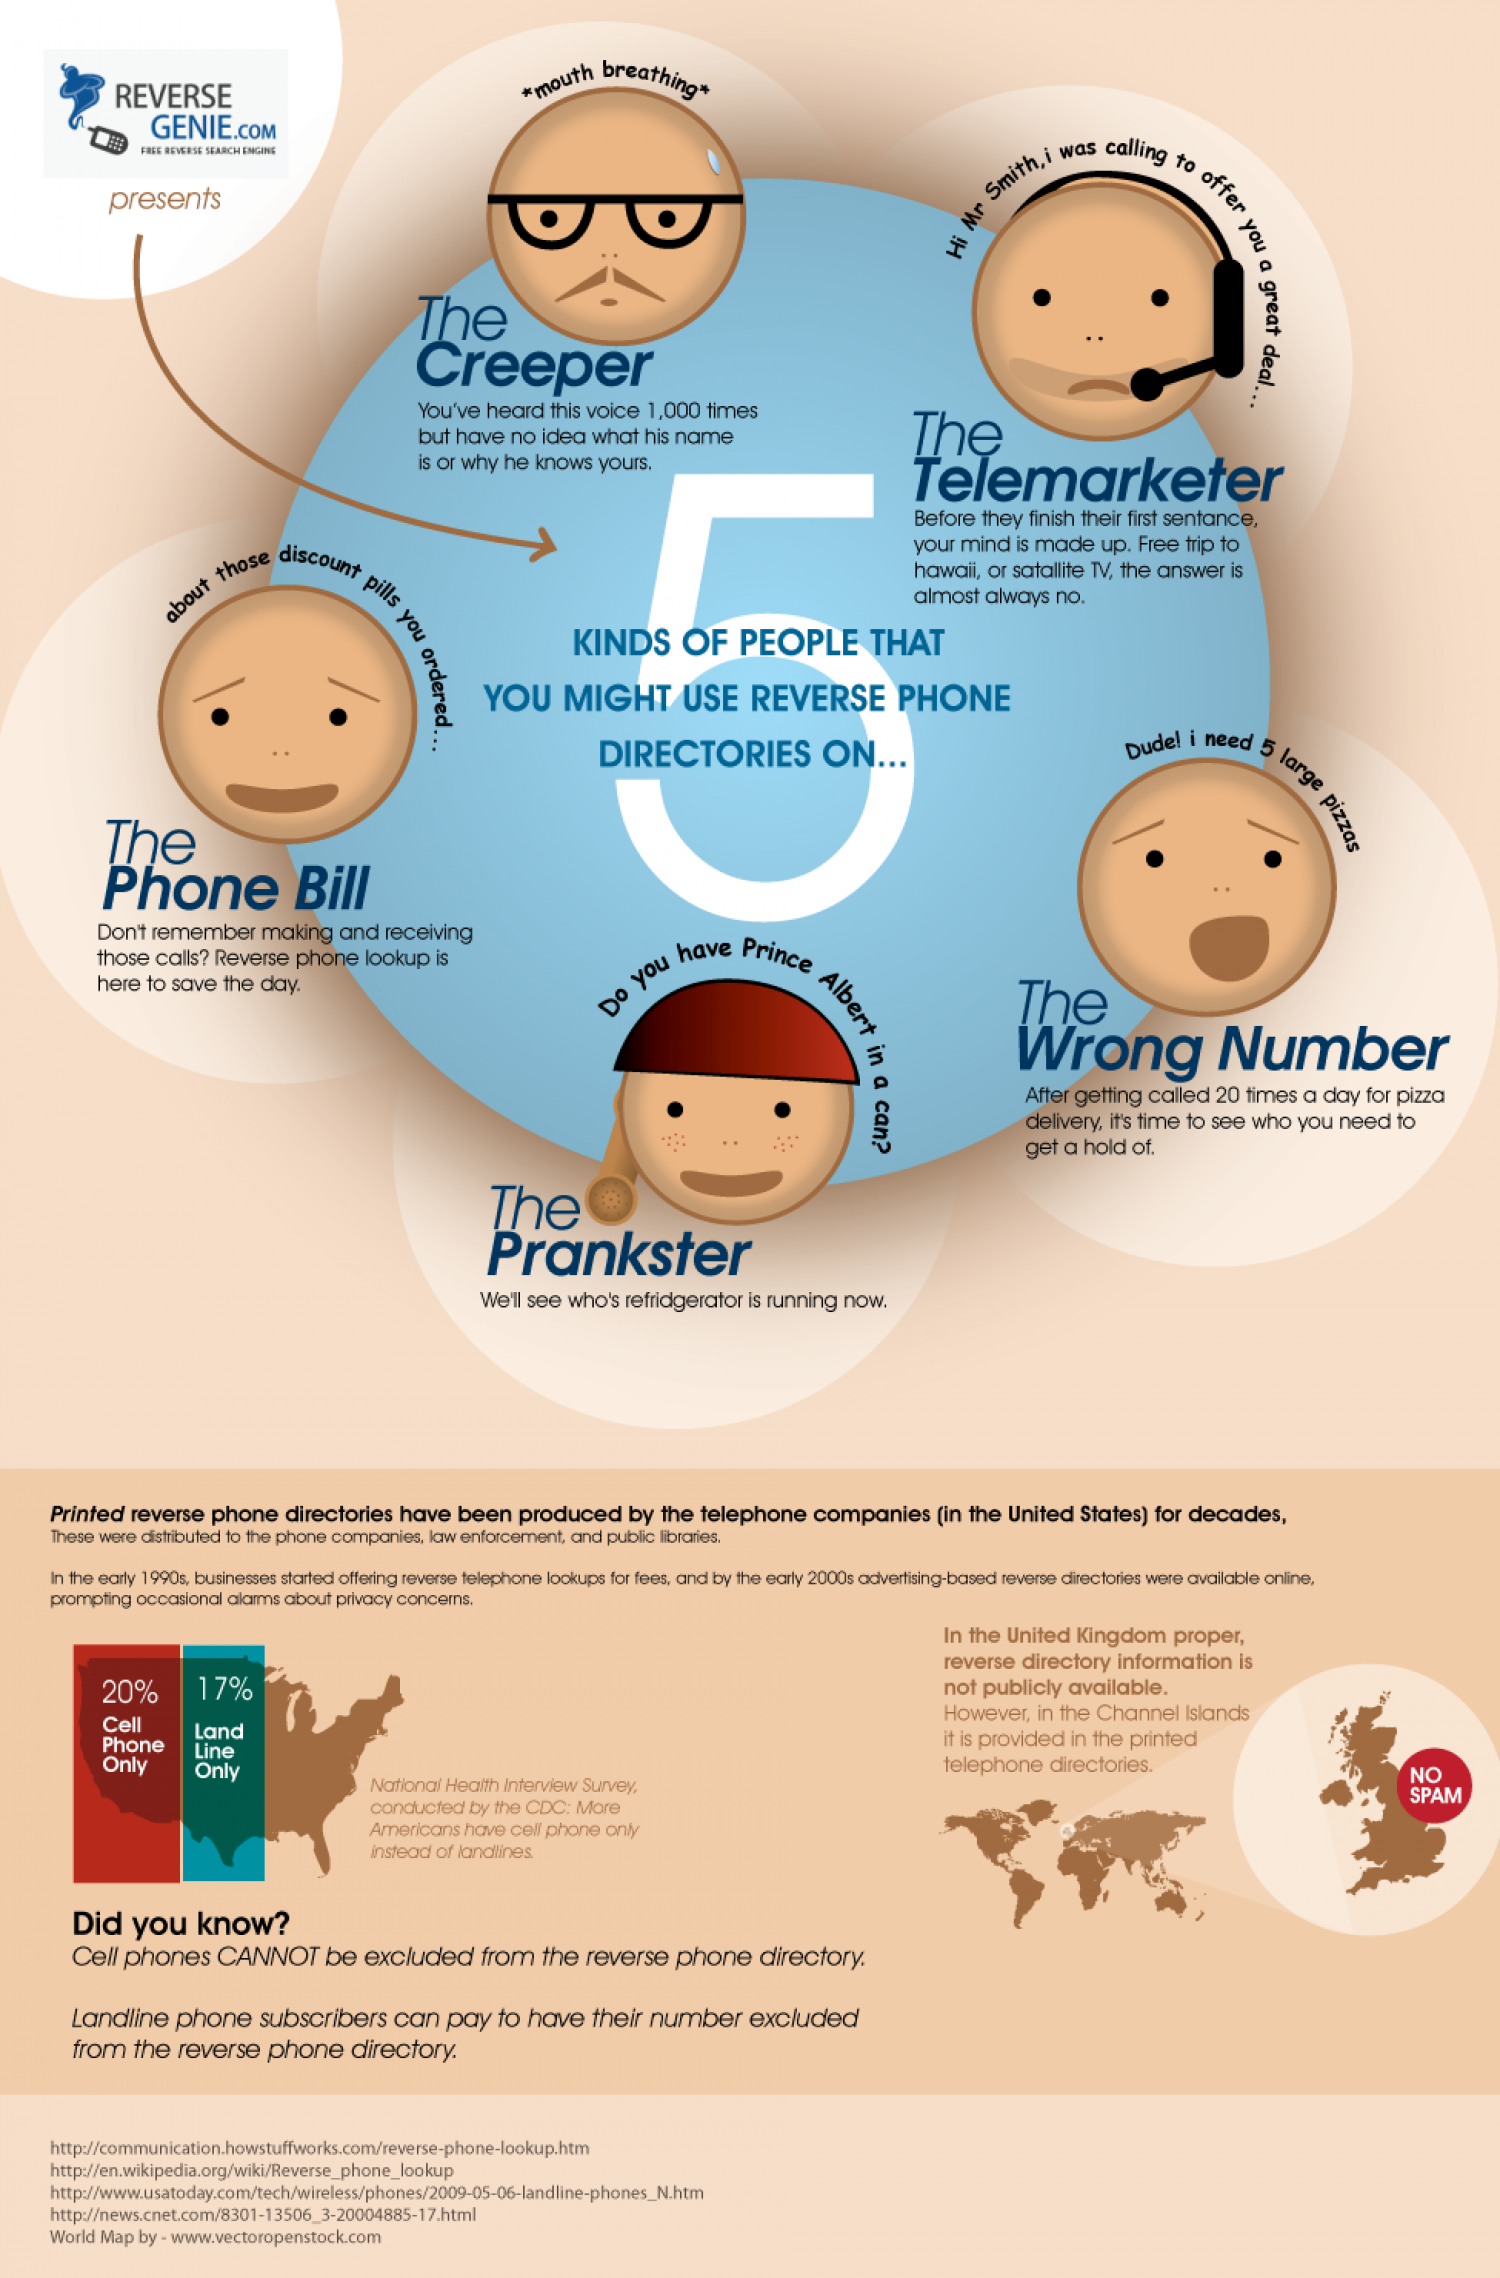 The 5 Types of People You Look Up Online Infographic